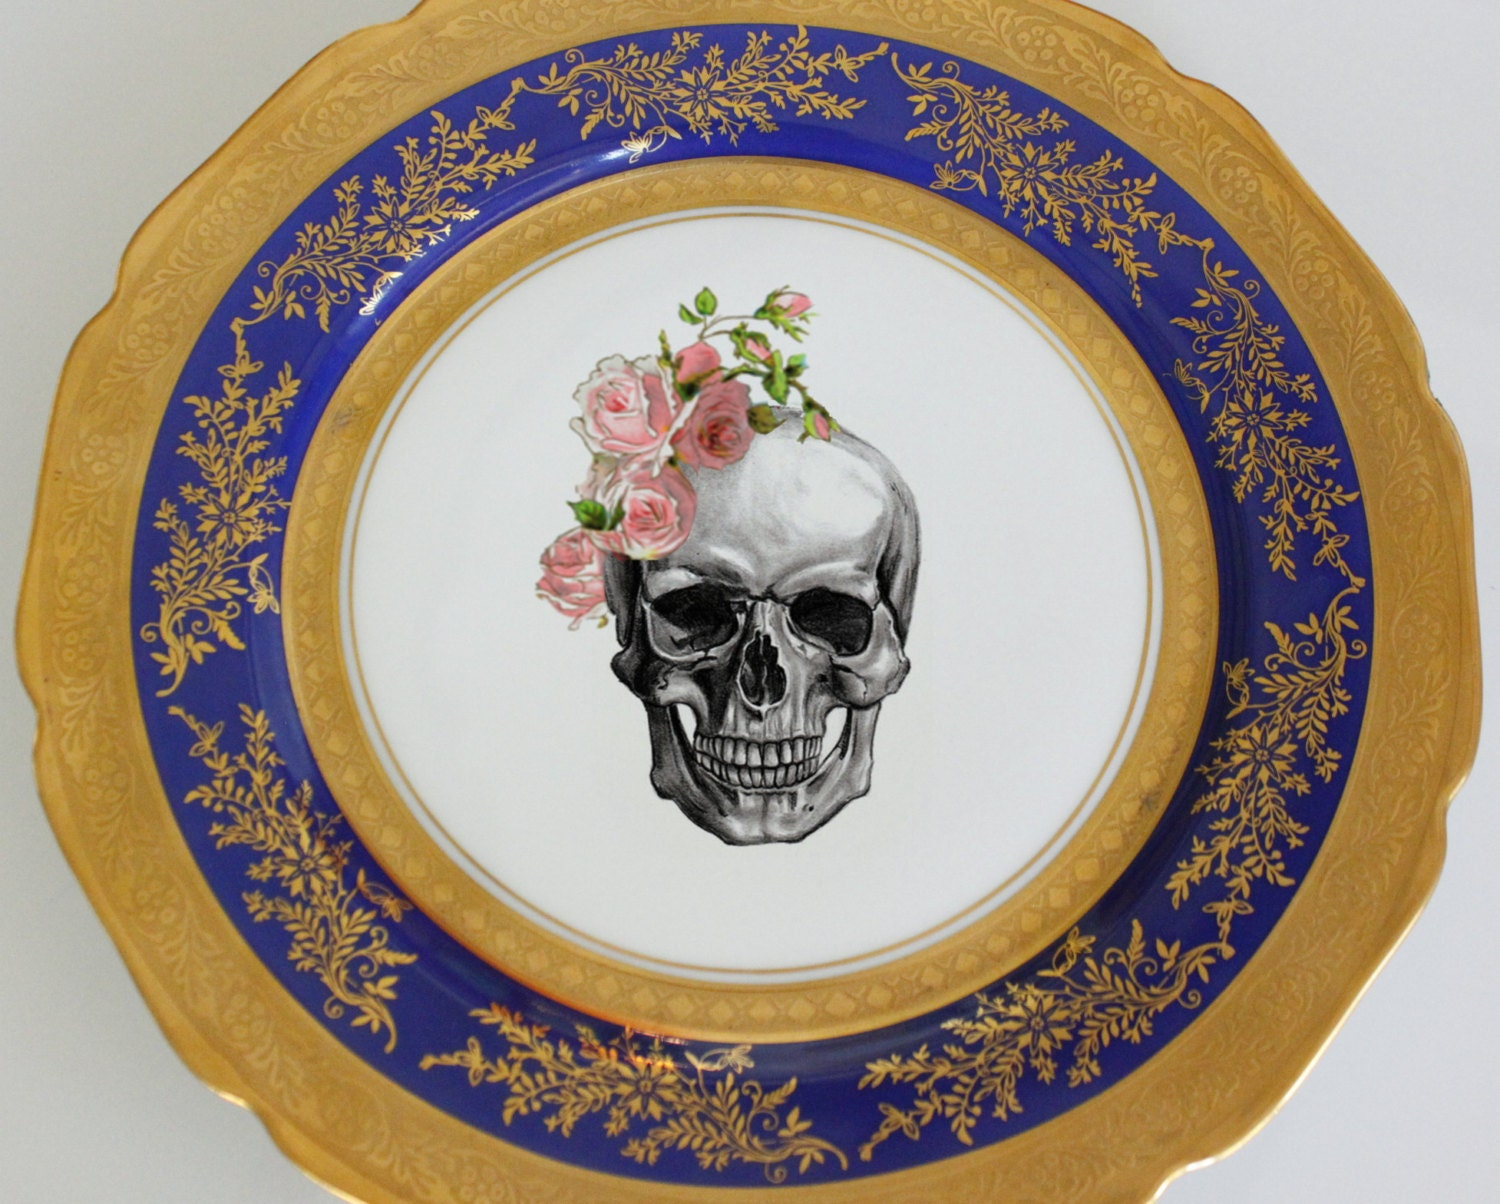 Blue and Gold Vintage Skull Dinner Plate 10.5  Halloween Dishes Skull Dinnerware Goth Plates Blue Gold Dinnerware Customizable  sc 1 st  WTF Porcelain : custom made dinner plates - pezcame.com